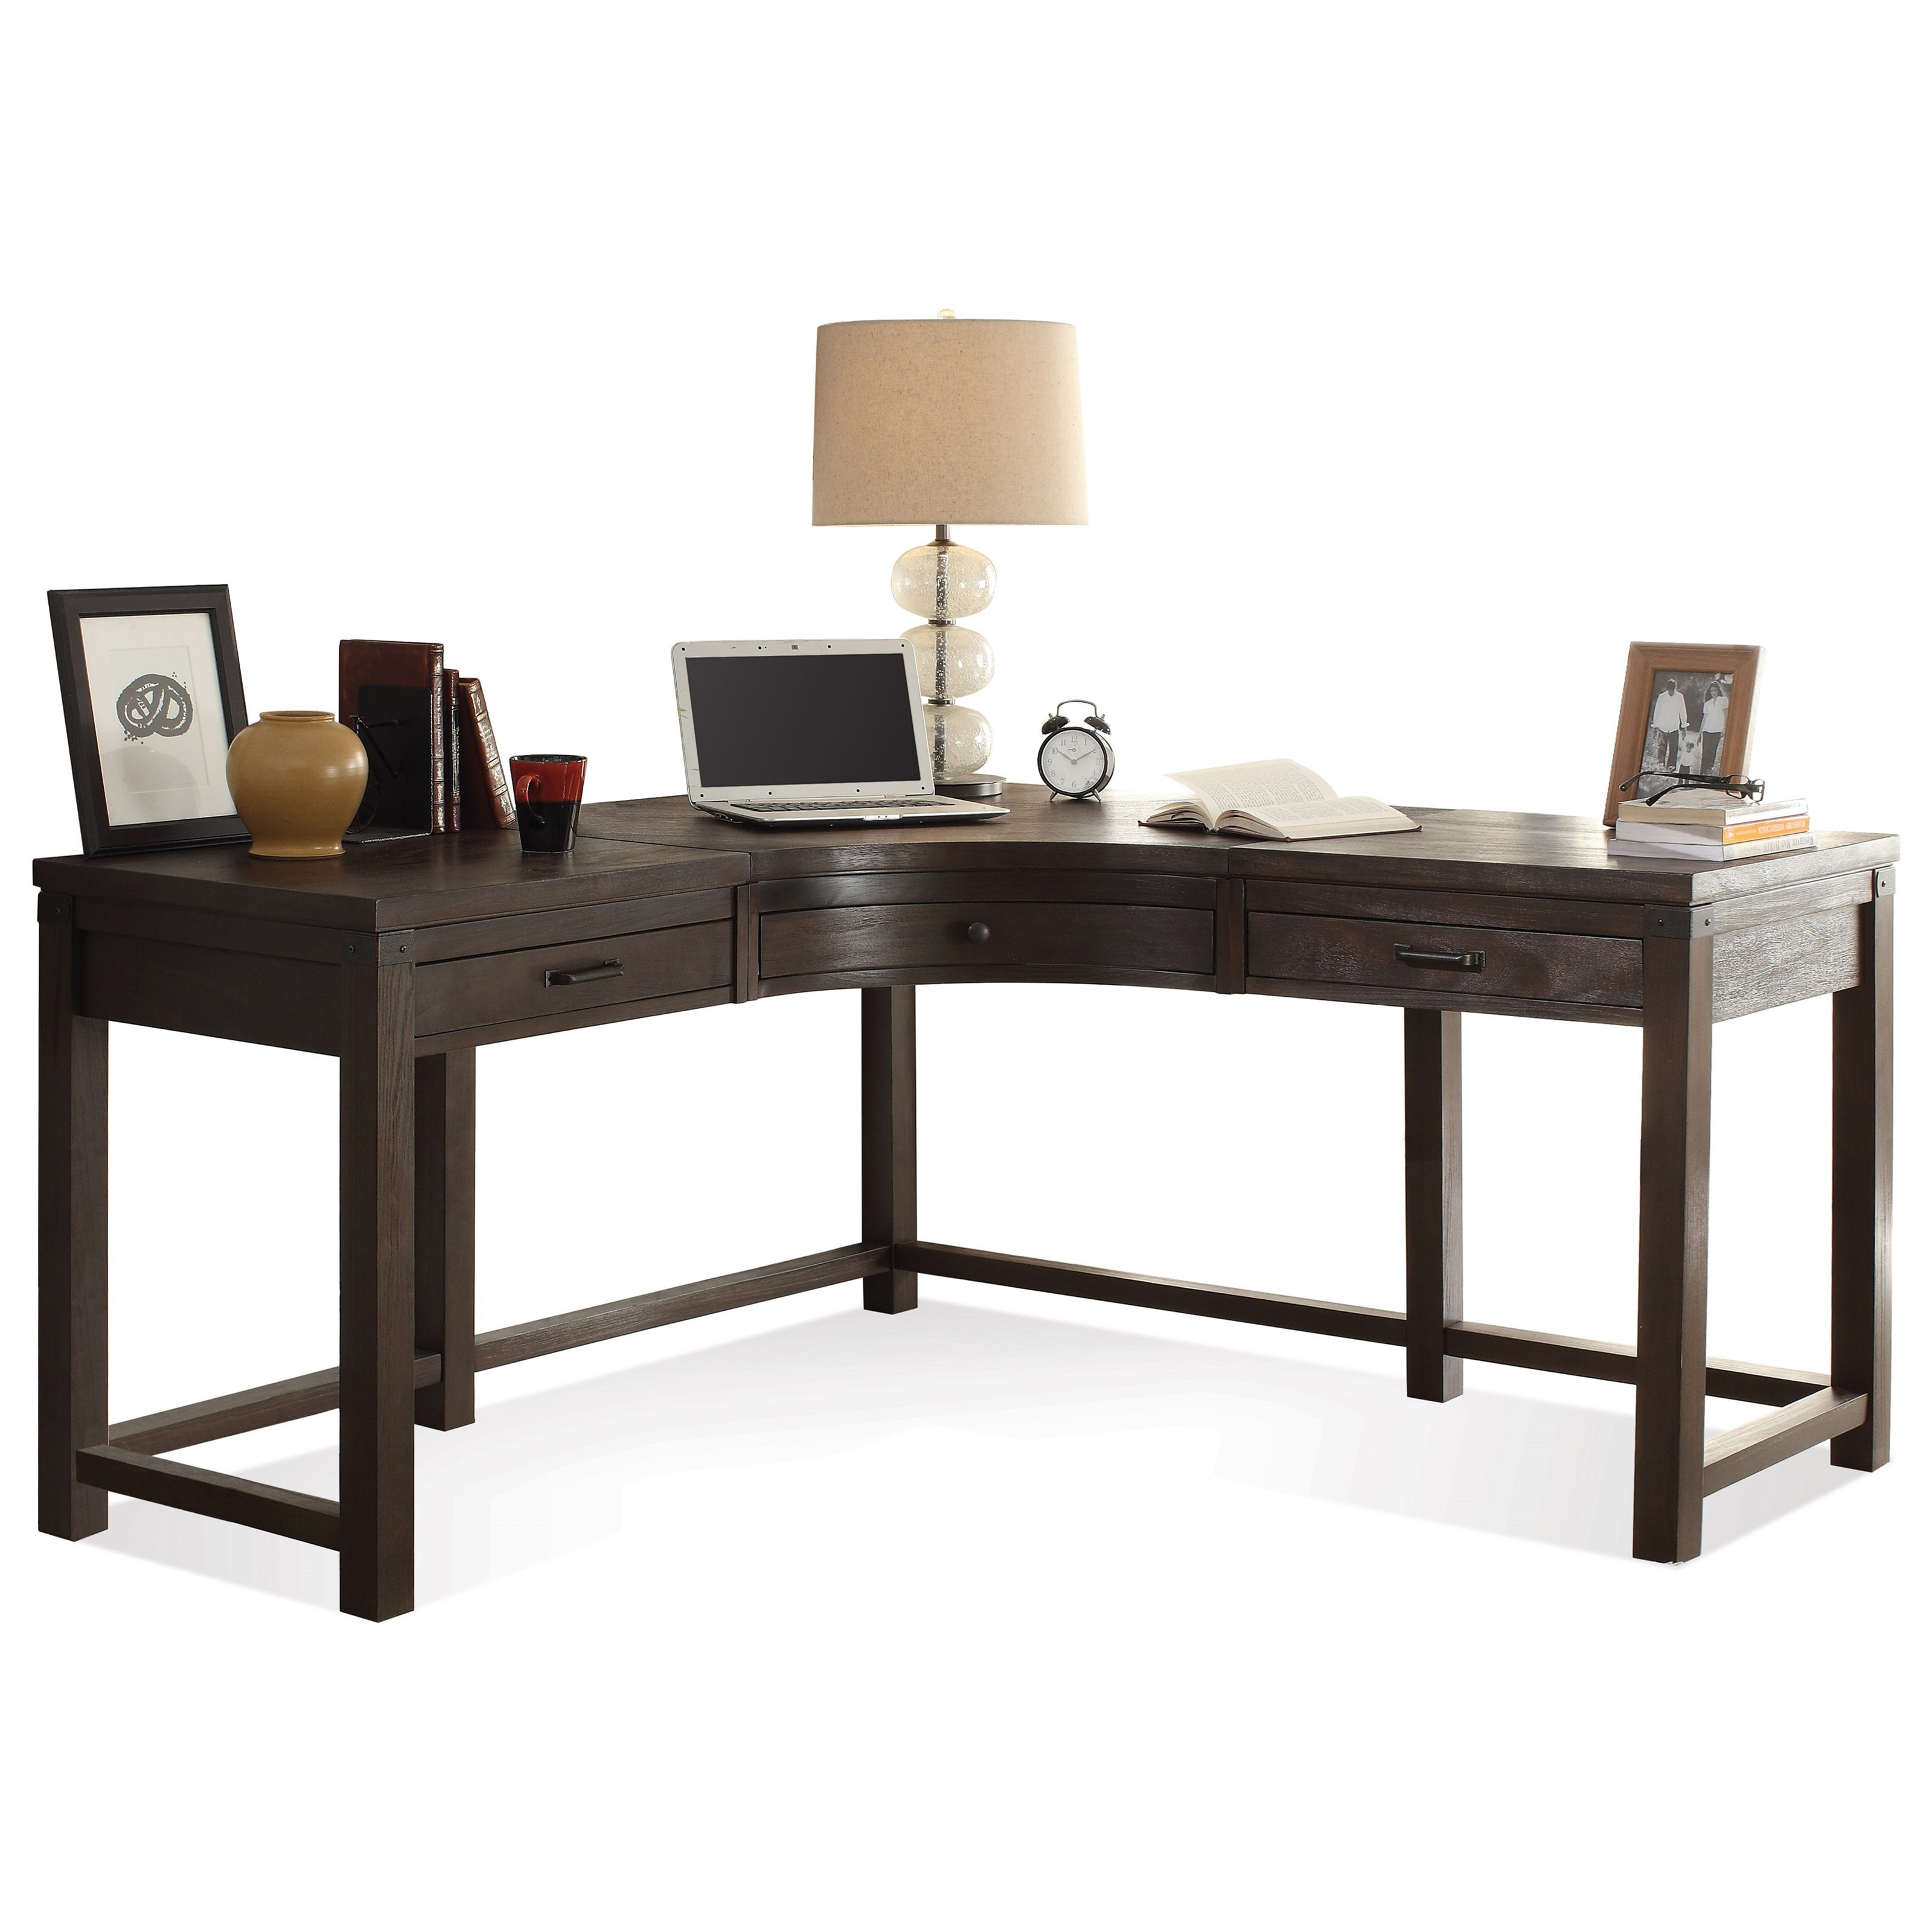 modern corner desk cozy image lustwithalaugh drawer and with of drawers design